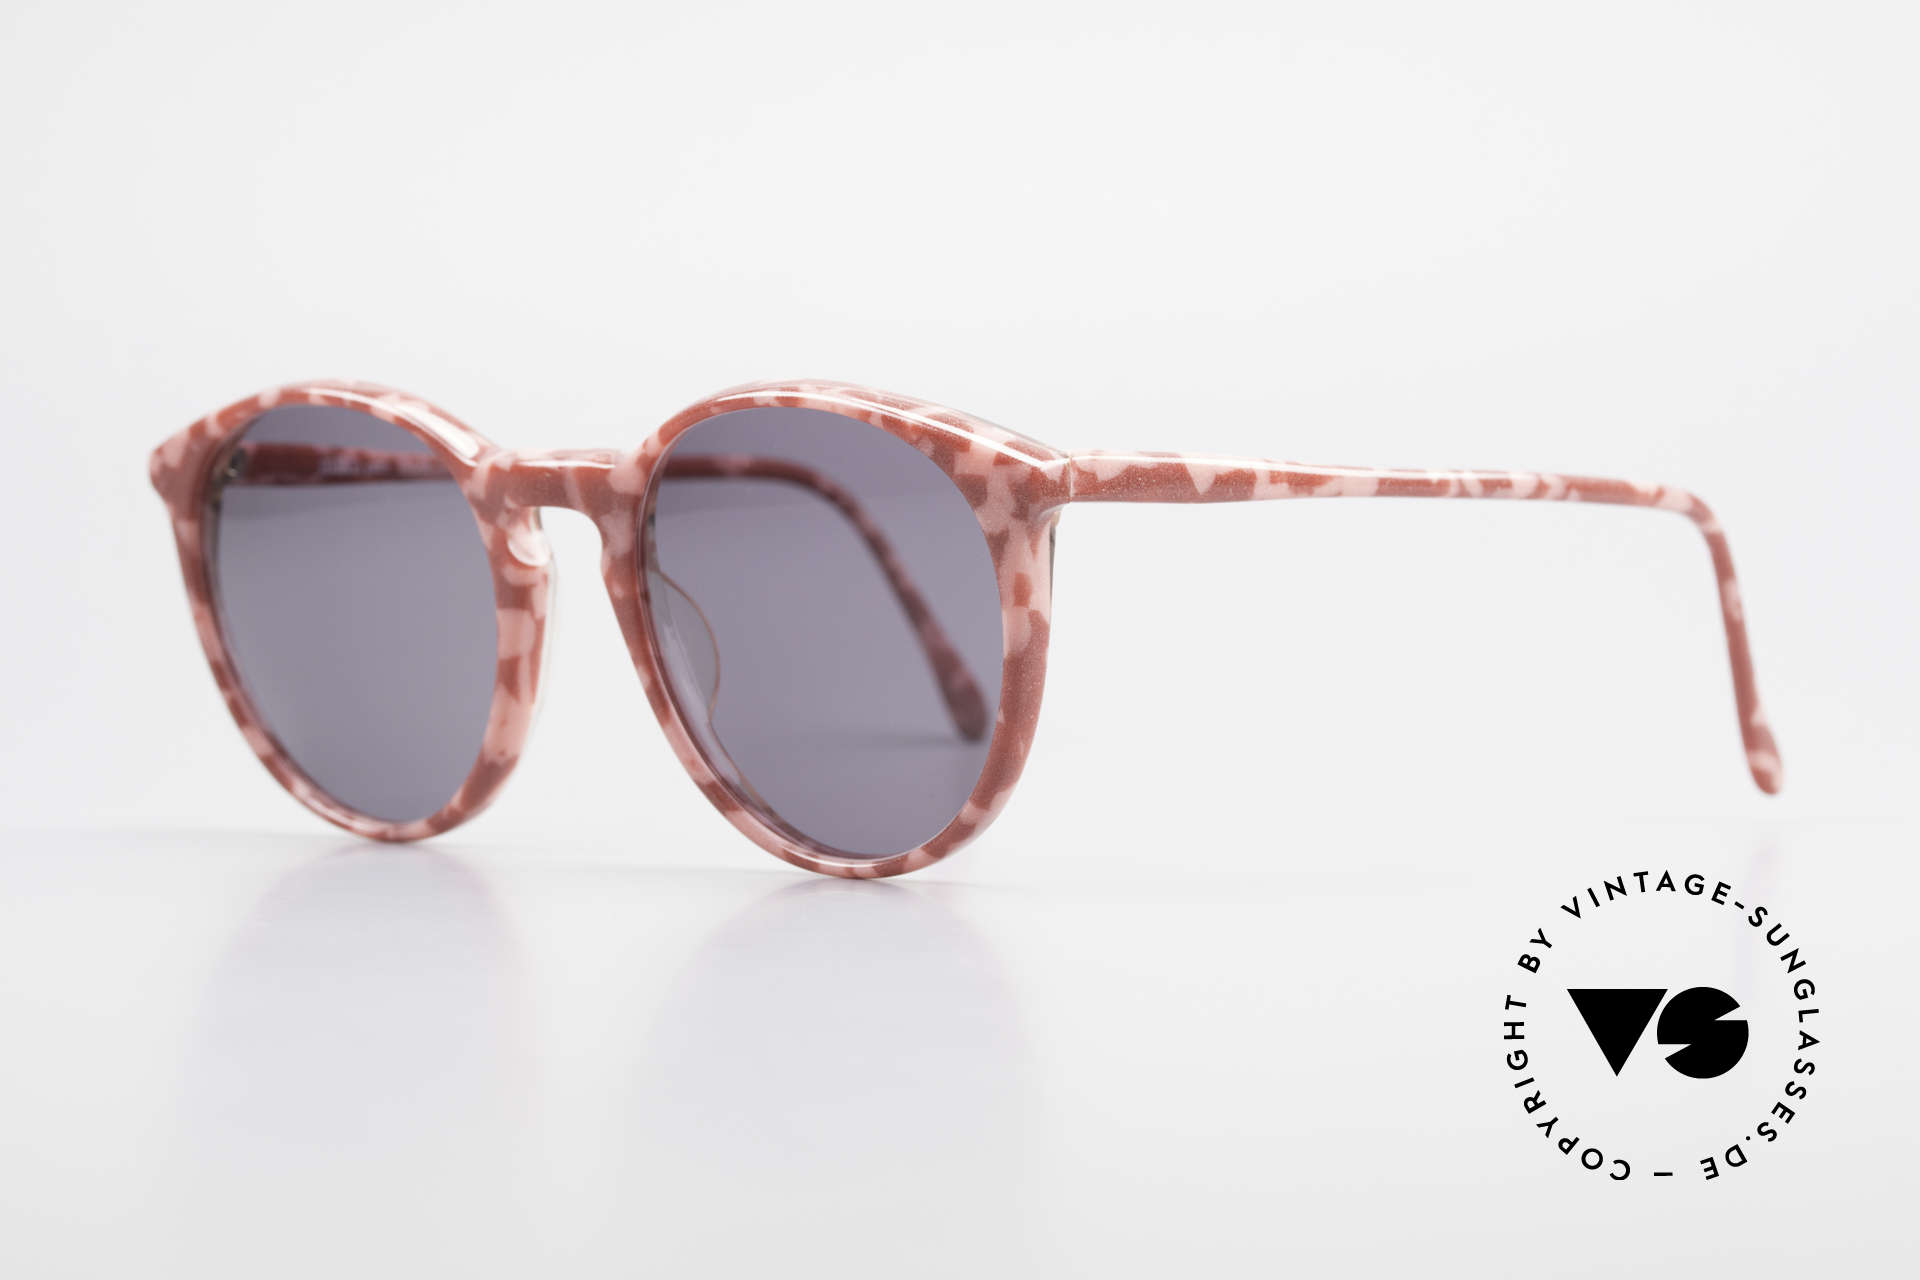 Alain Mikli 901 / 172 Panto Shades Red Pink Marbled, terrific frame pattern: ruby-colored/pink marbled, Made for Women